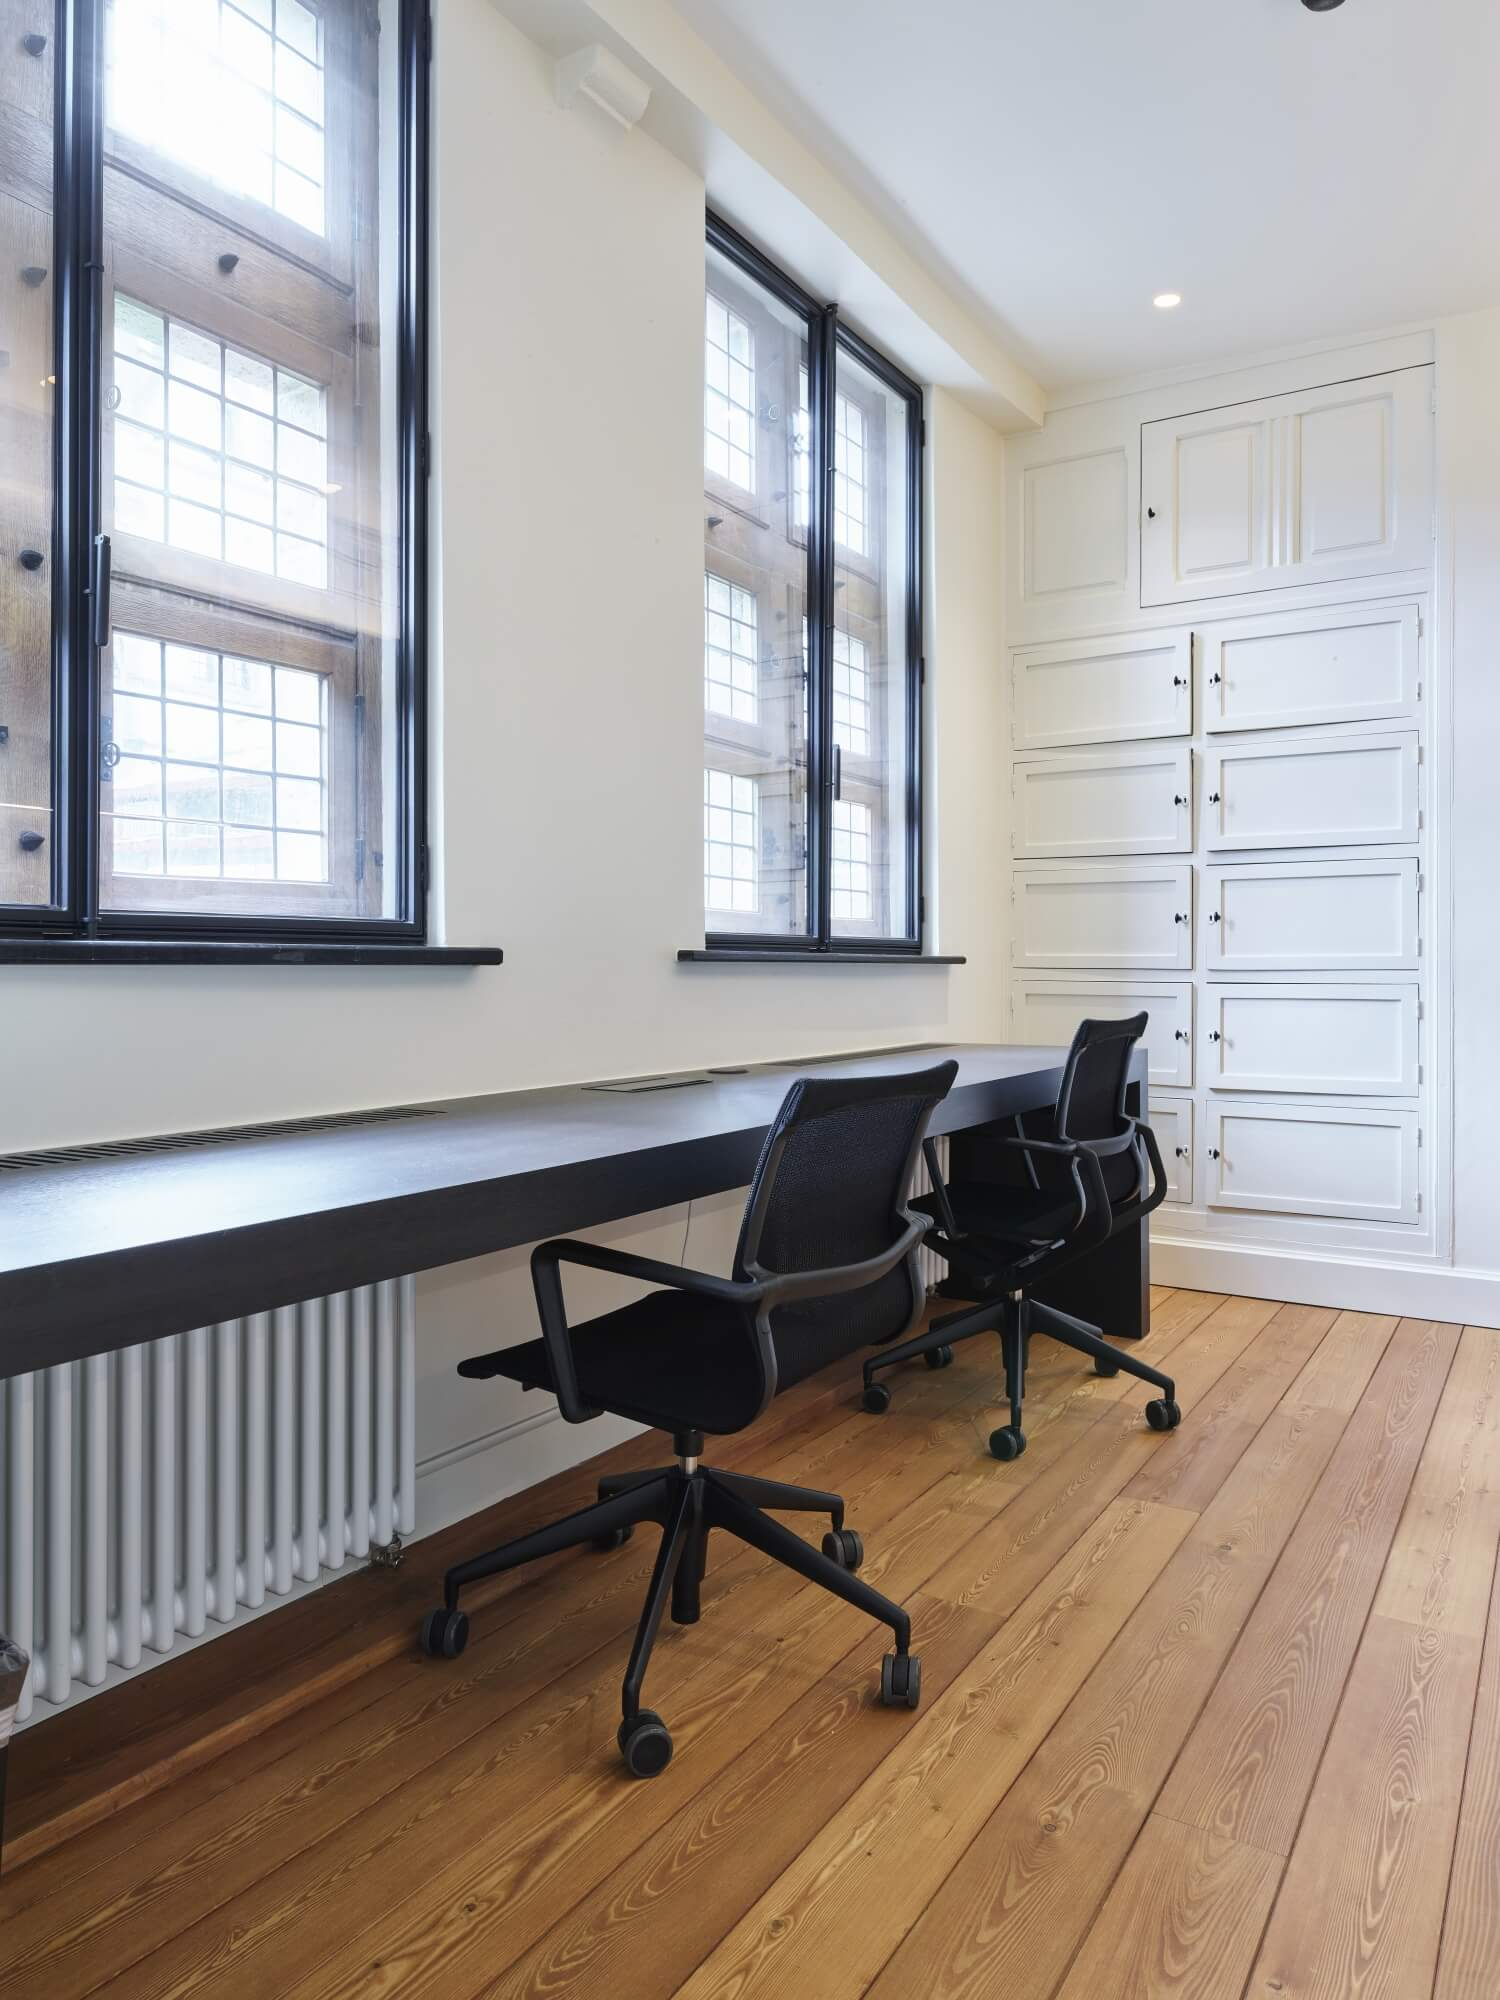 Solid wood flooring in an office.